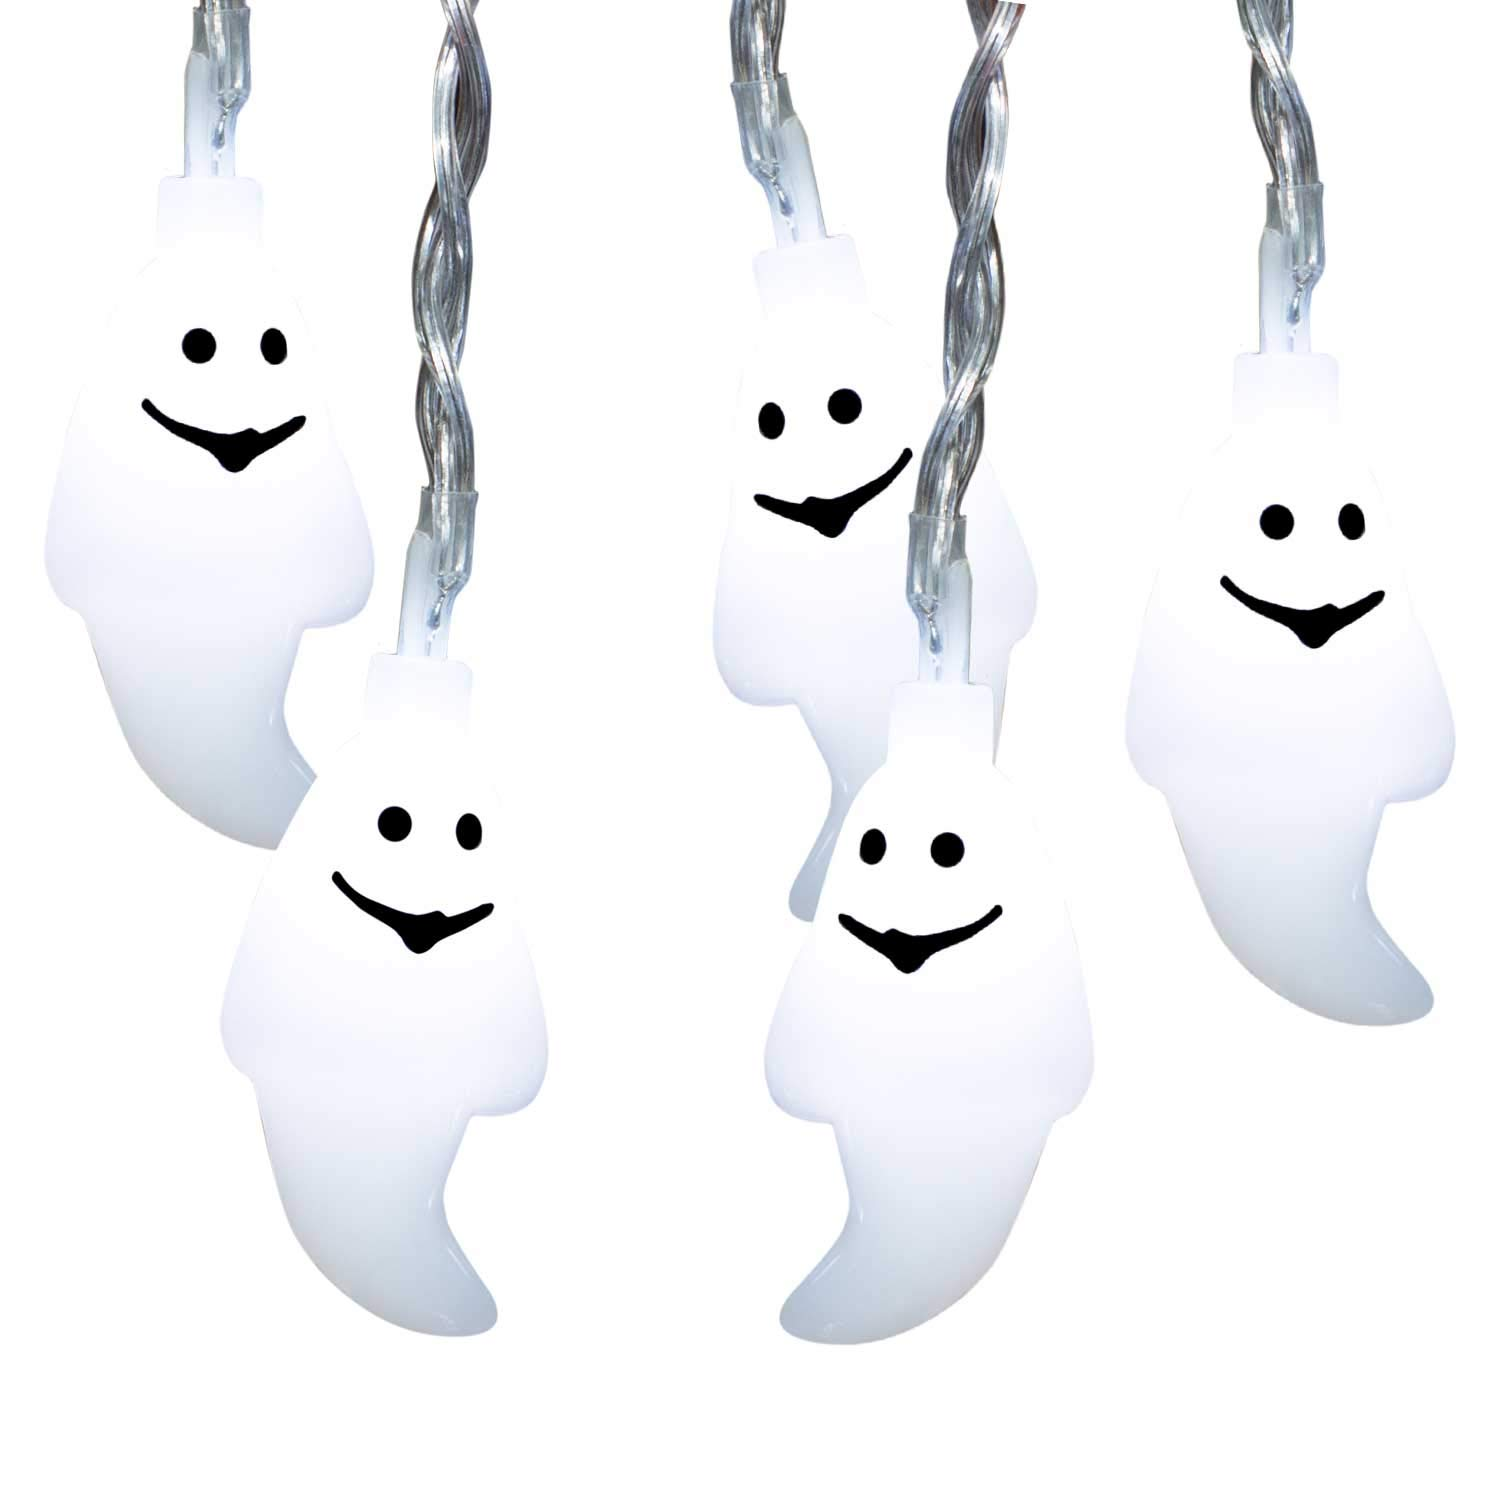 Brightown 20ct Halloween White Ghost String Lights, Battery Operated 20pcs LEDs Halloween Holiday Decoration